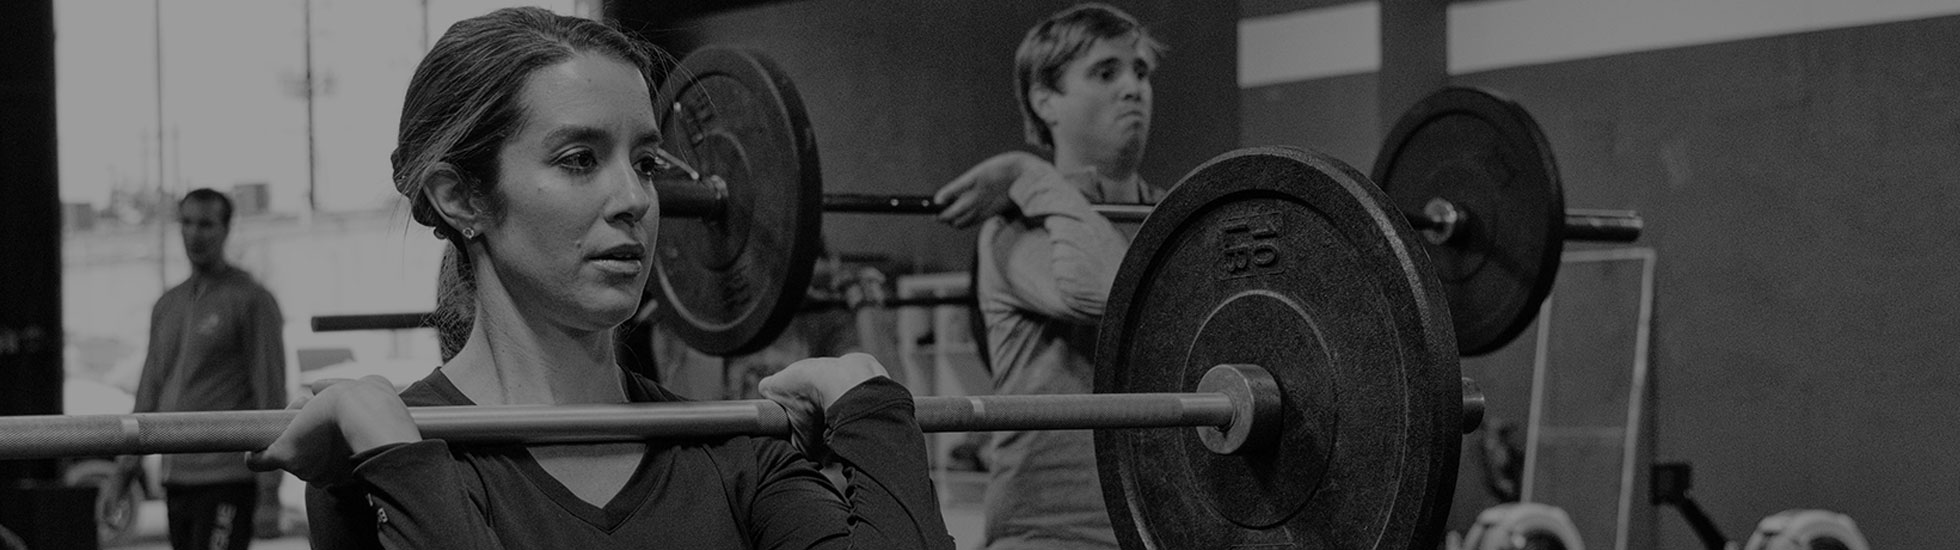 Top 5 Best Gyms To Join Near Me In The Heights, Texas